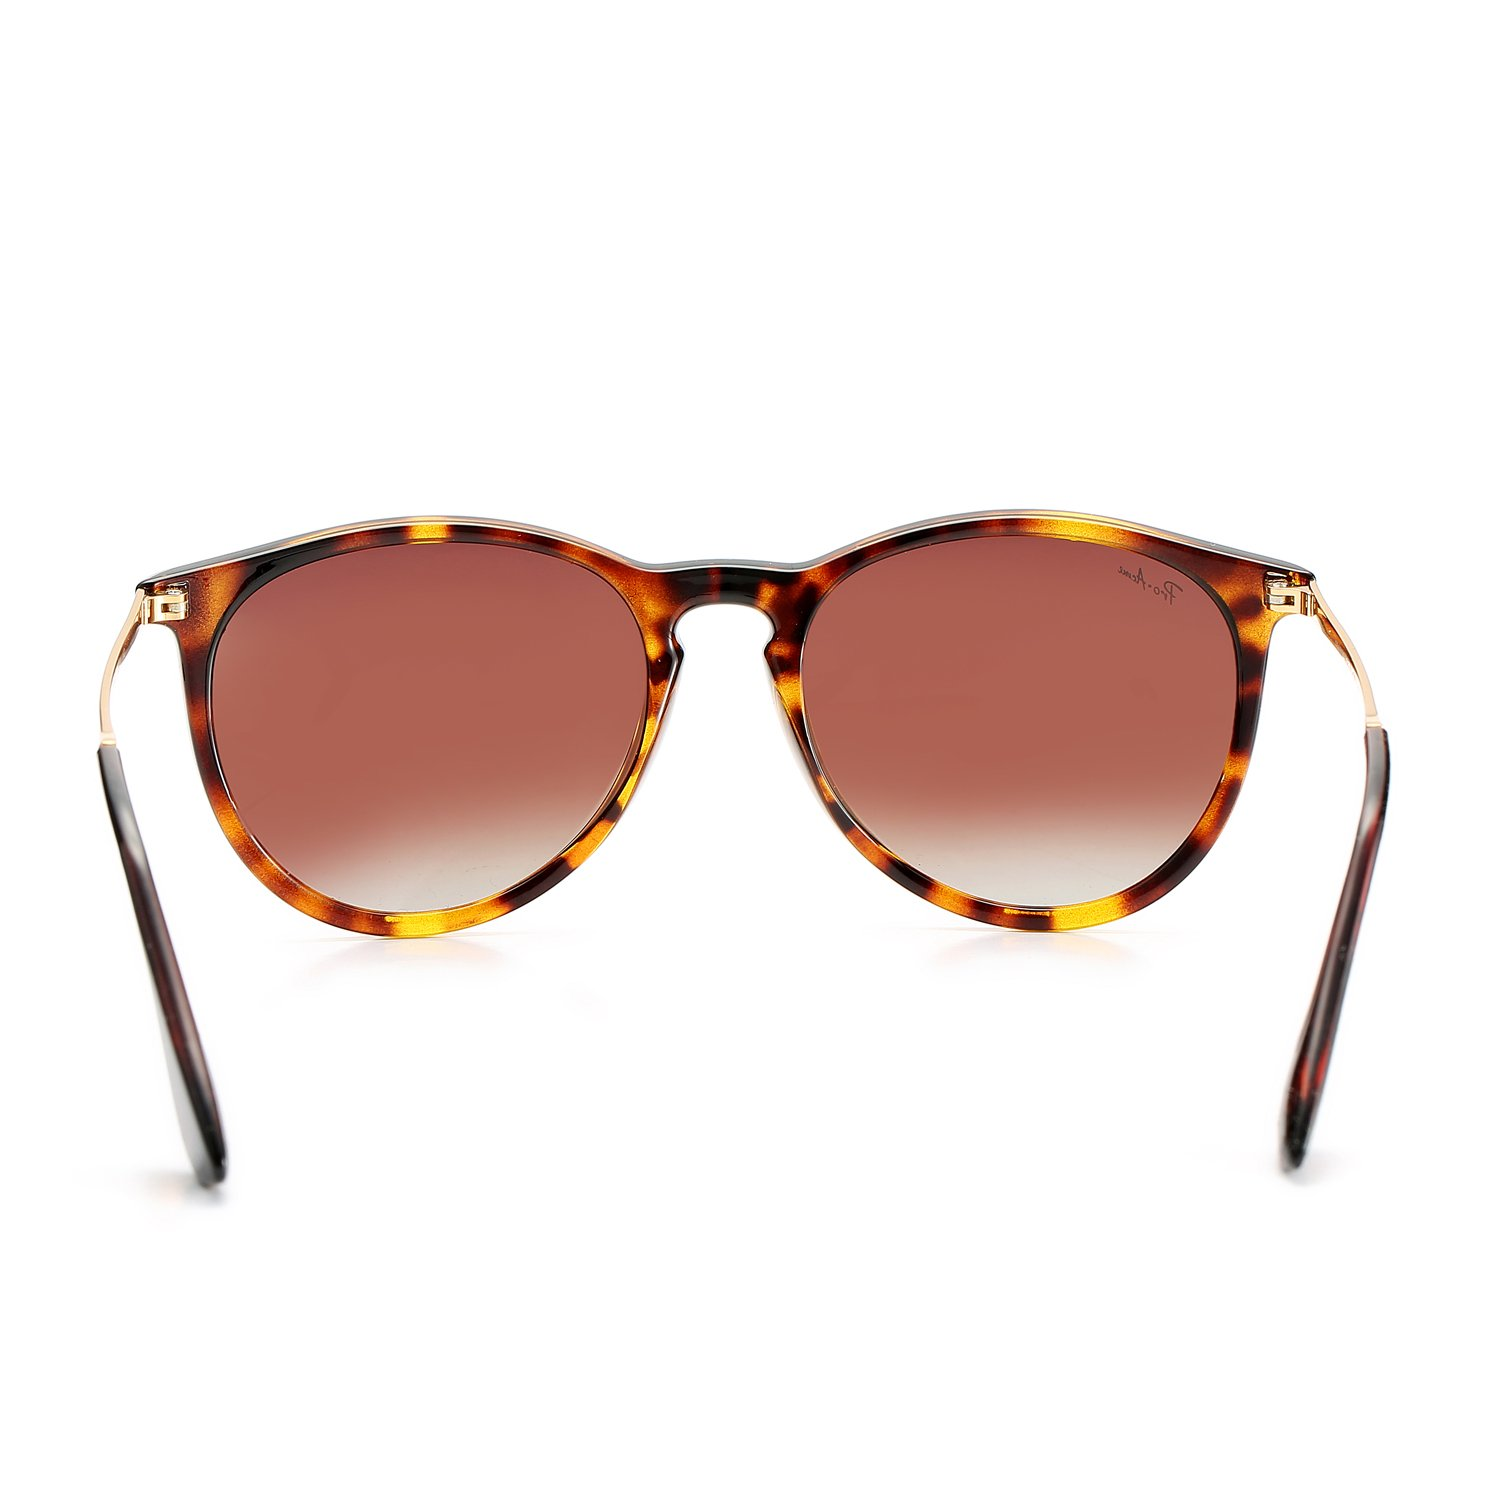 Polarized Sunglasses for Women Classic Round Style 100% UV Protection (Tortoise; Gold/Brown Gradient) by Pro Acme (Image #5)